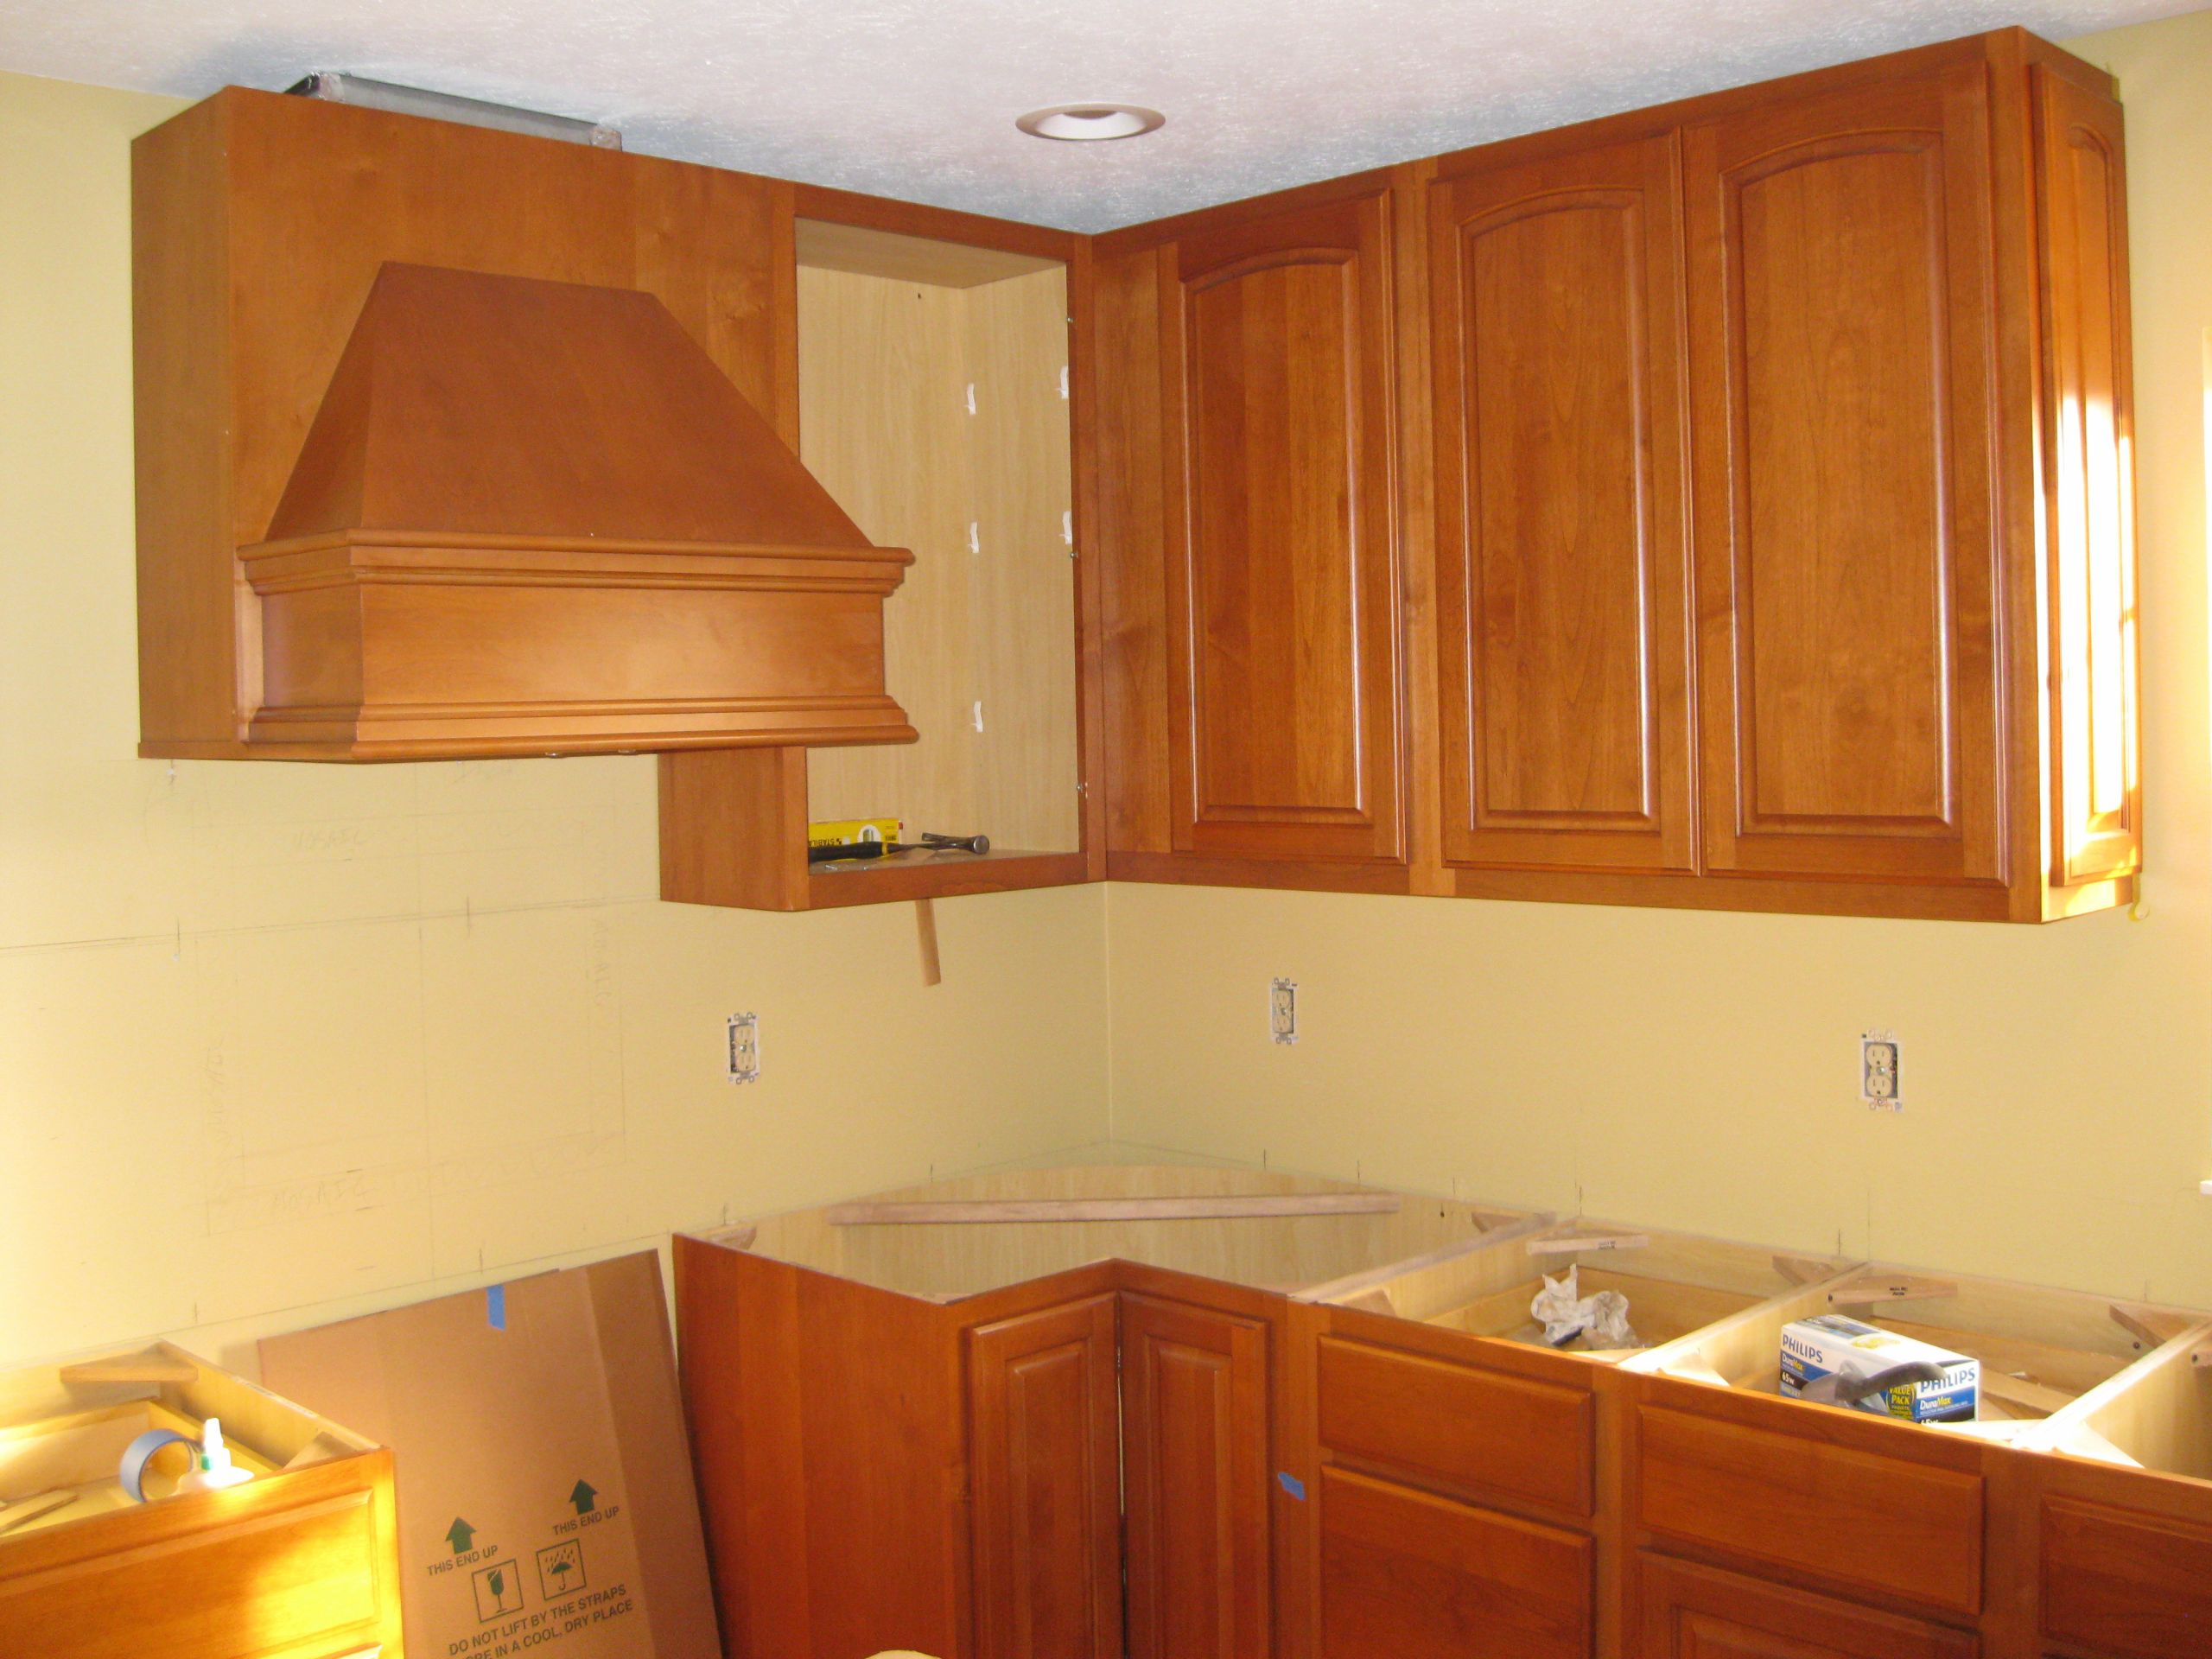 Wall Cabinet Kitchen  West Chester Kitchen fice Wall Cabinets Remodeling